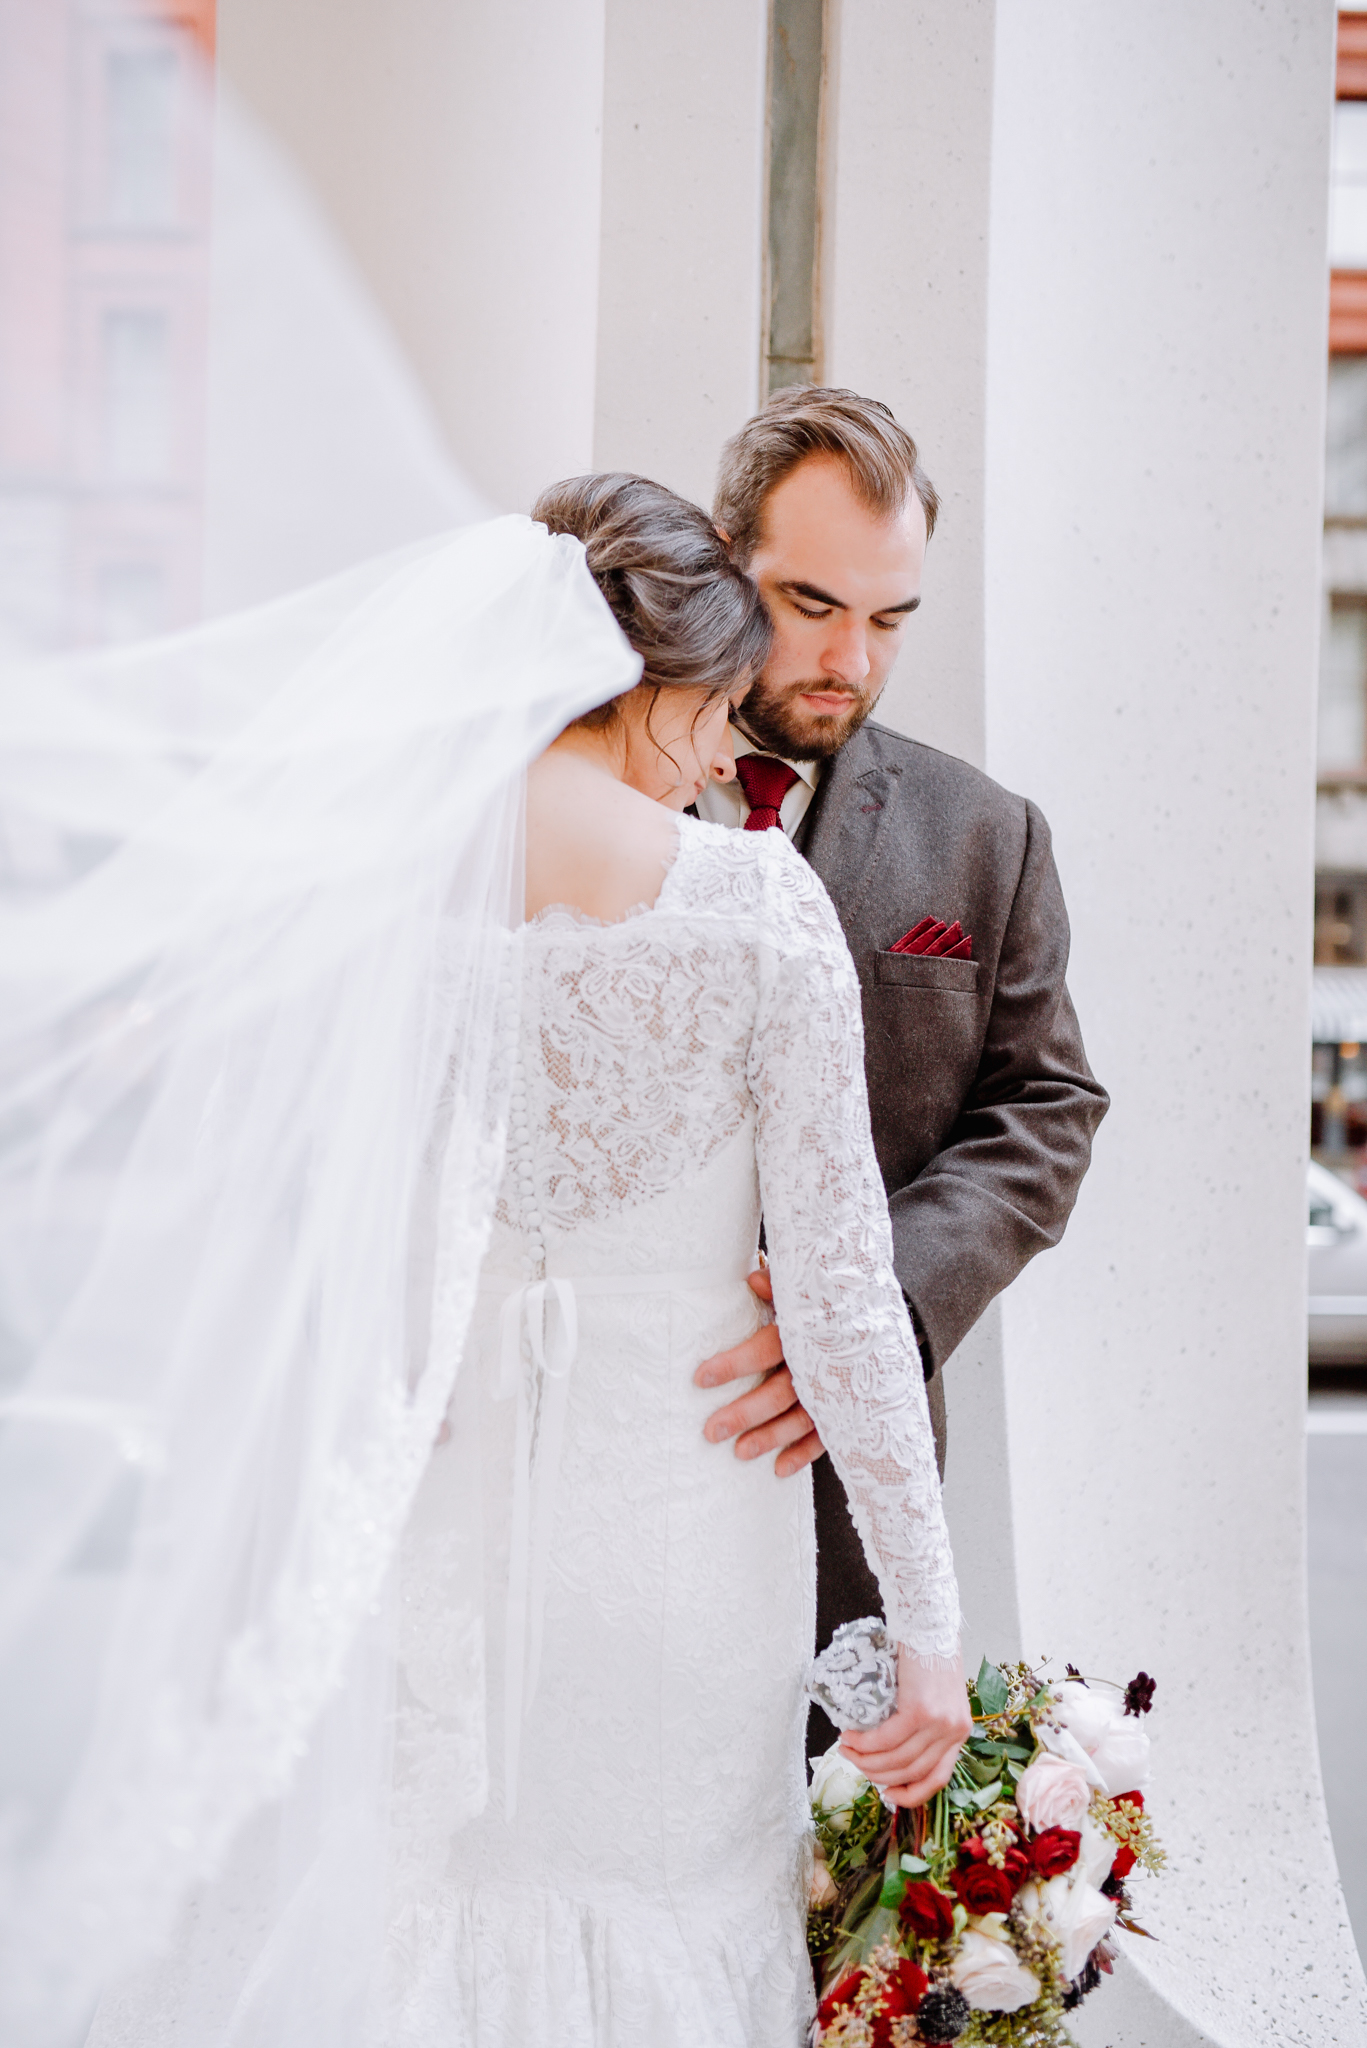 Manu and Laura - Portland Wedding Photographer - 87.jpg